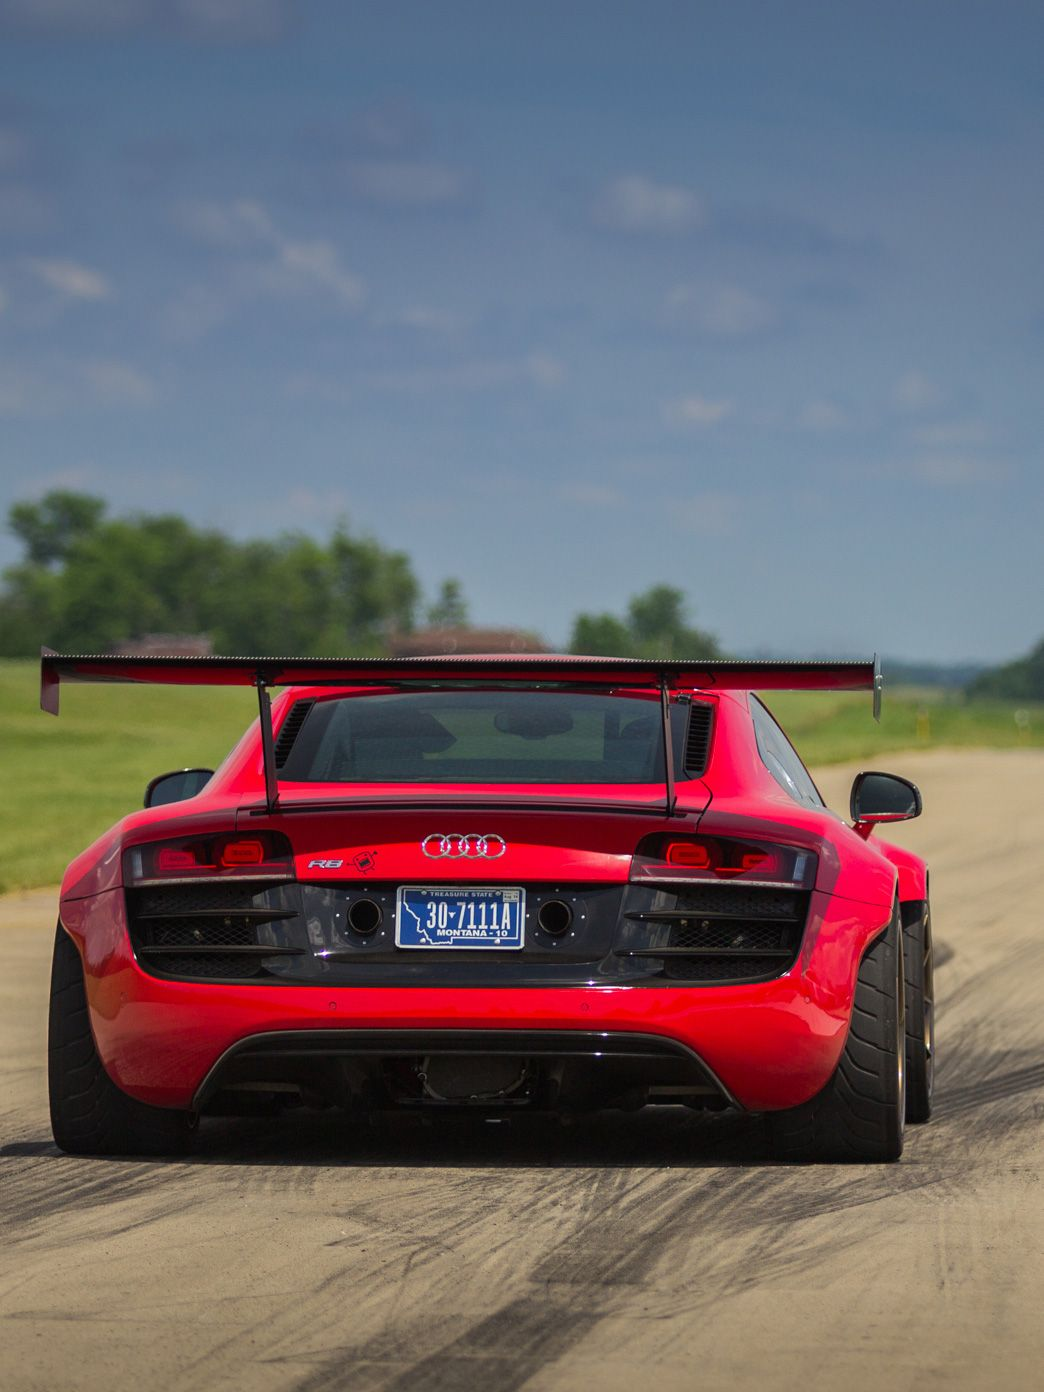 Wide body Audi R8. ________________________ PACKAIR INC. -- THE NAME TO TRUST FOR ALL INTERNATIONAL & DOMESTIC MOVES. Call today 310-337-9993 or visit www.packair.com for a free quote on your shipment. #DontJustShipIt #PACKAIR-IT!